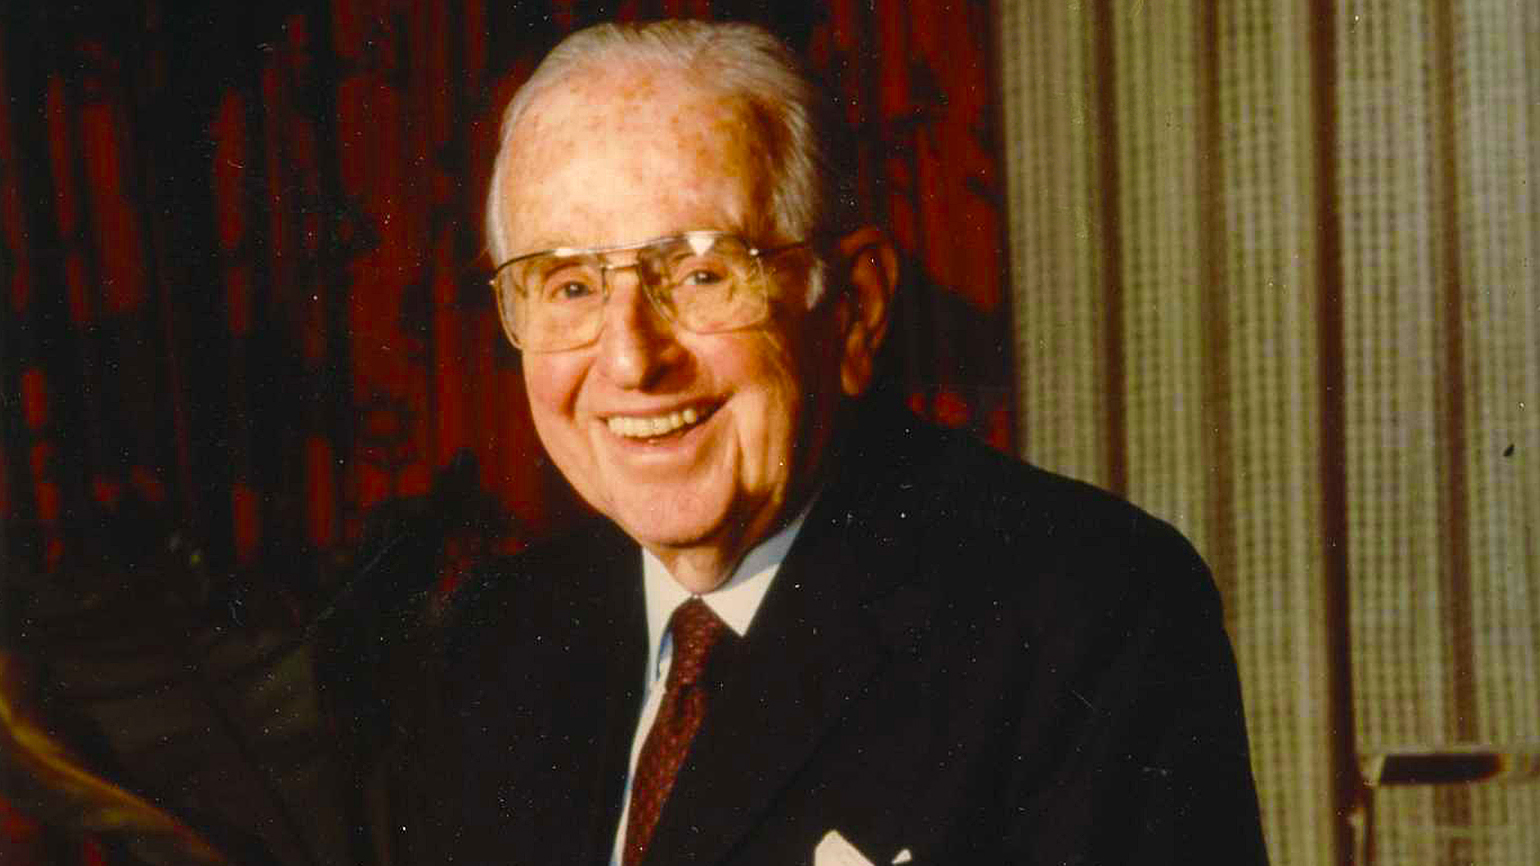 Guideposts founder Dr. Norman Vincent Peale